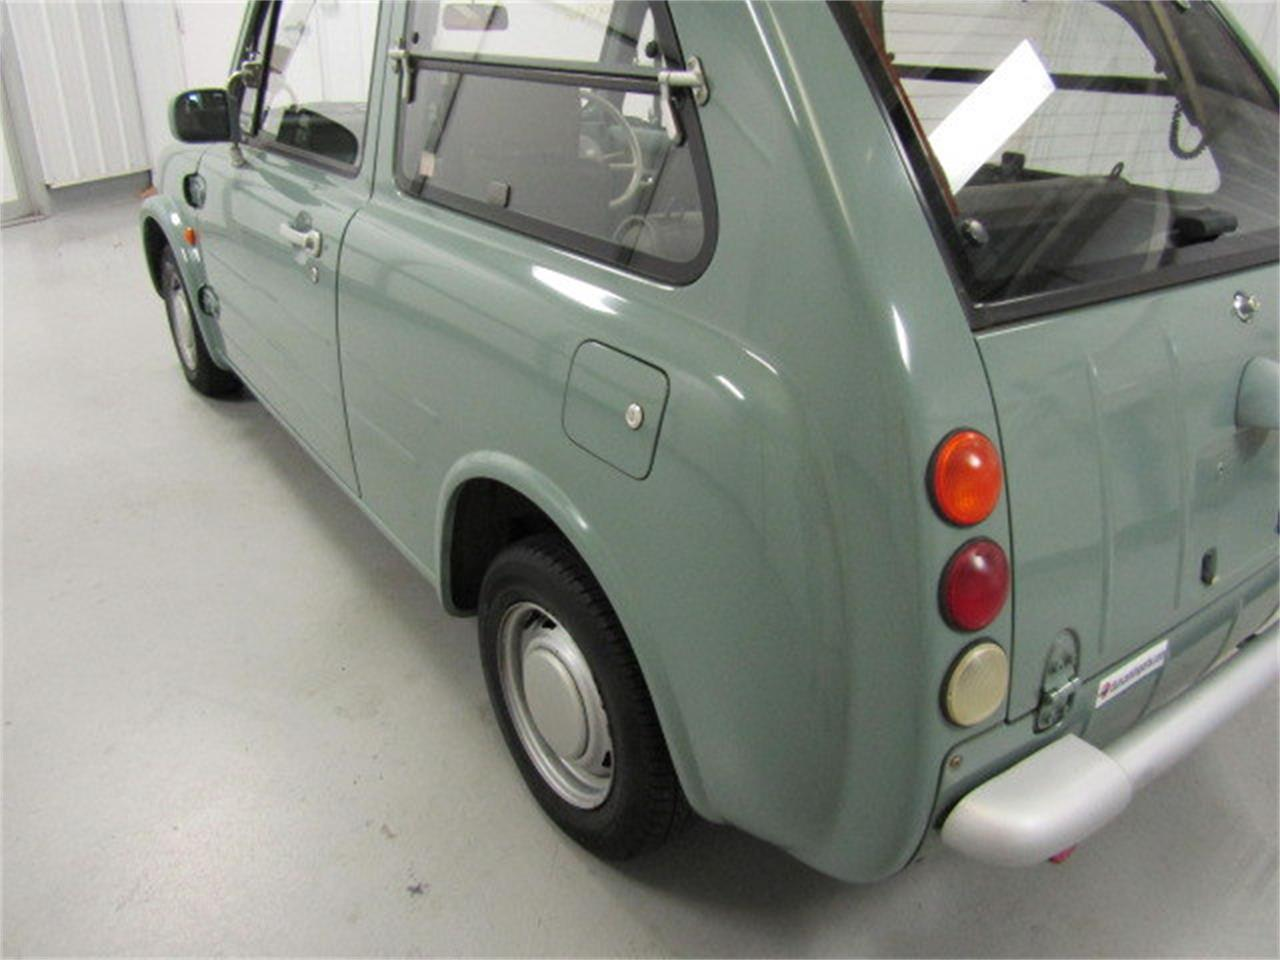 Large Picture of 1990 Nissan Pao located in Christiansburg Virginia - $9,967.00 Offered by Duncan Imports & Classic Cars - LI63